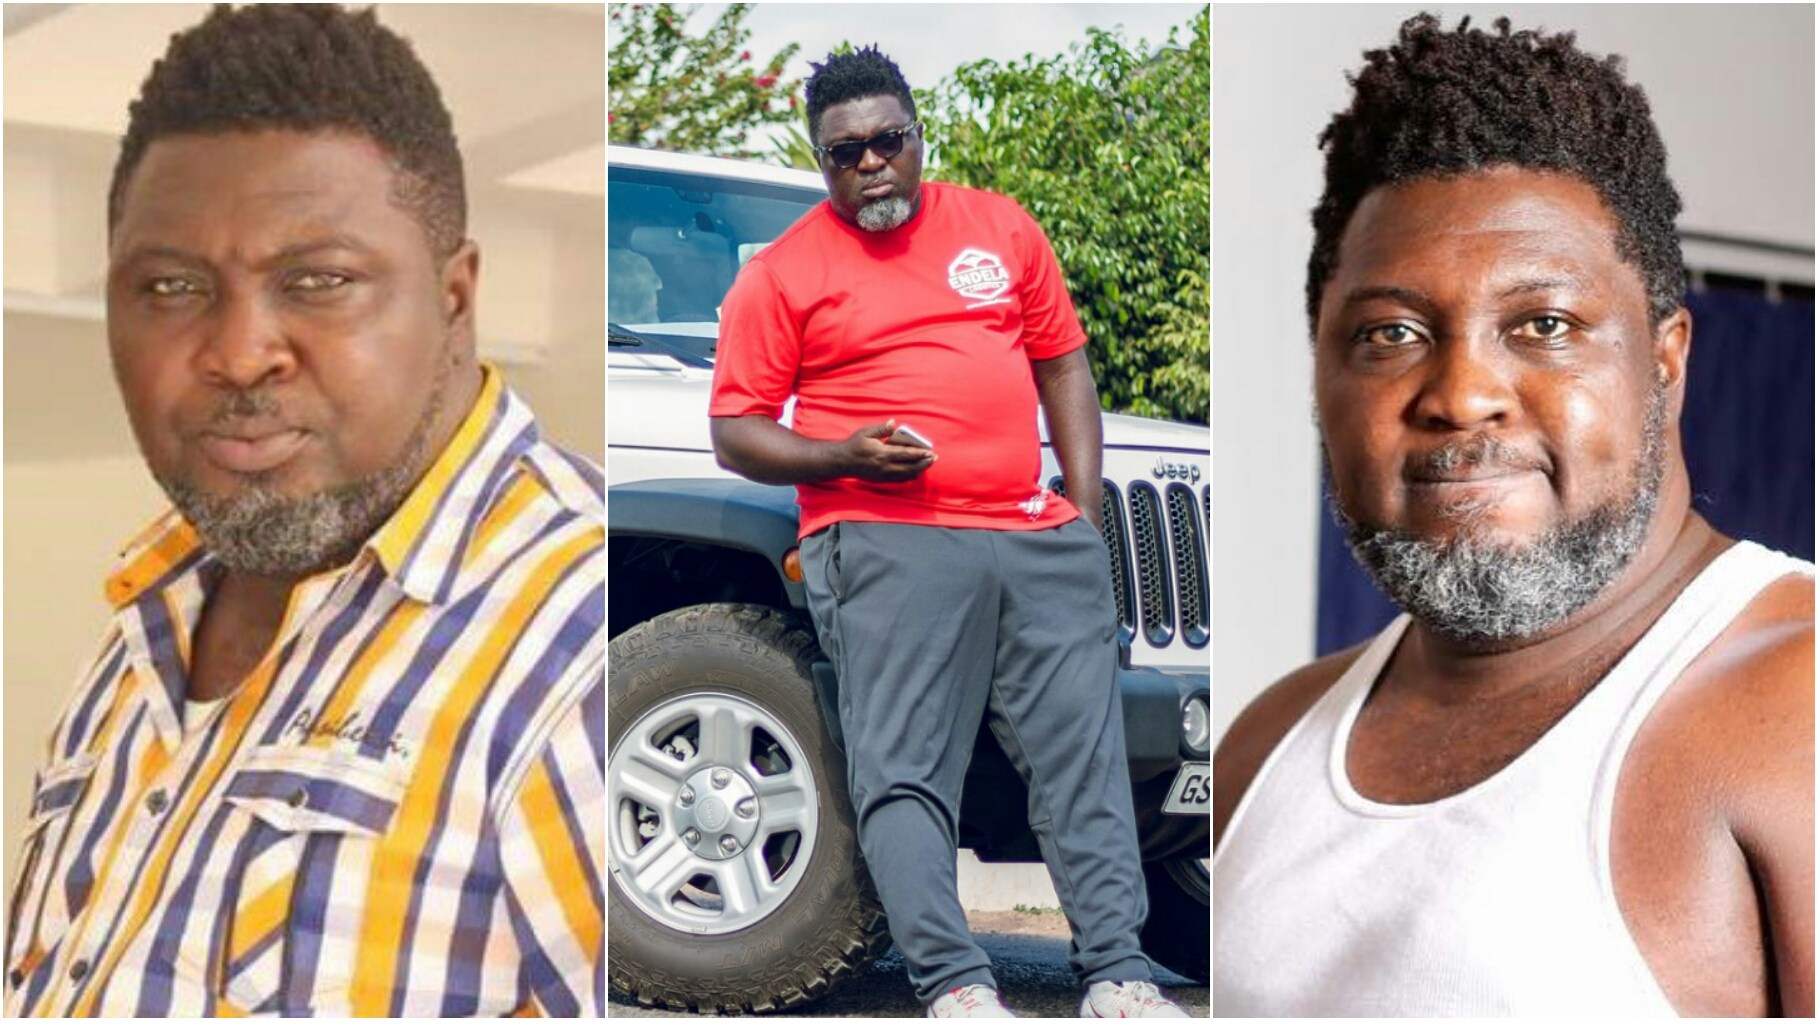 Obrafour was the first to take me to the Studio – Hammer